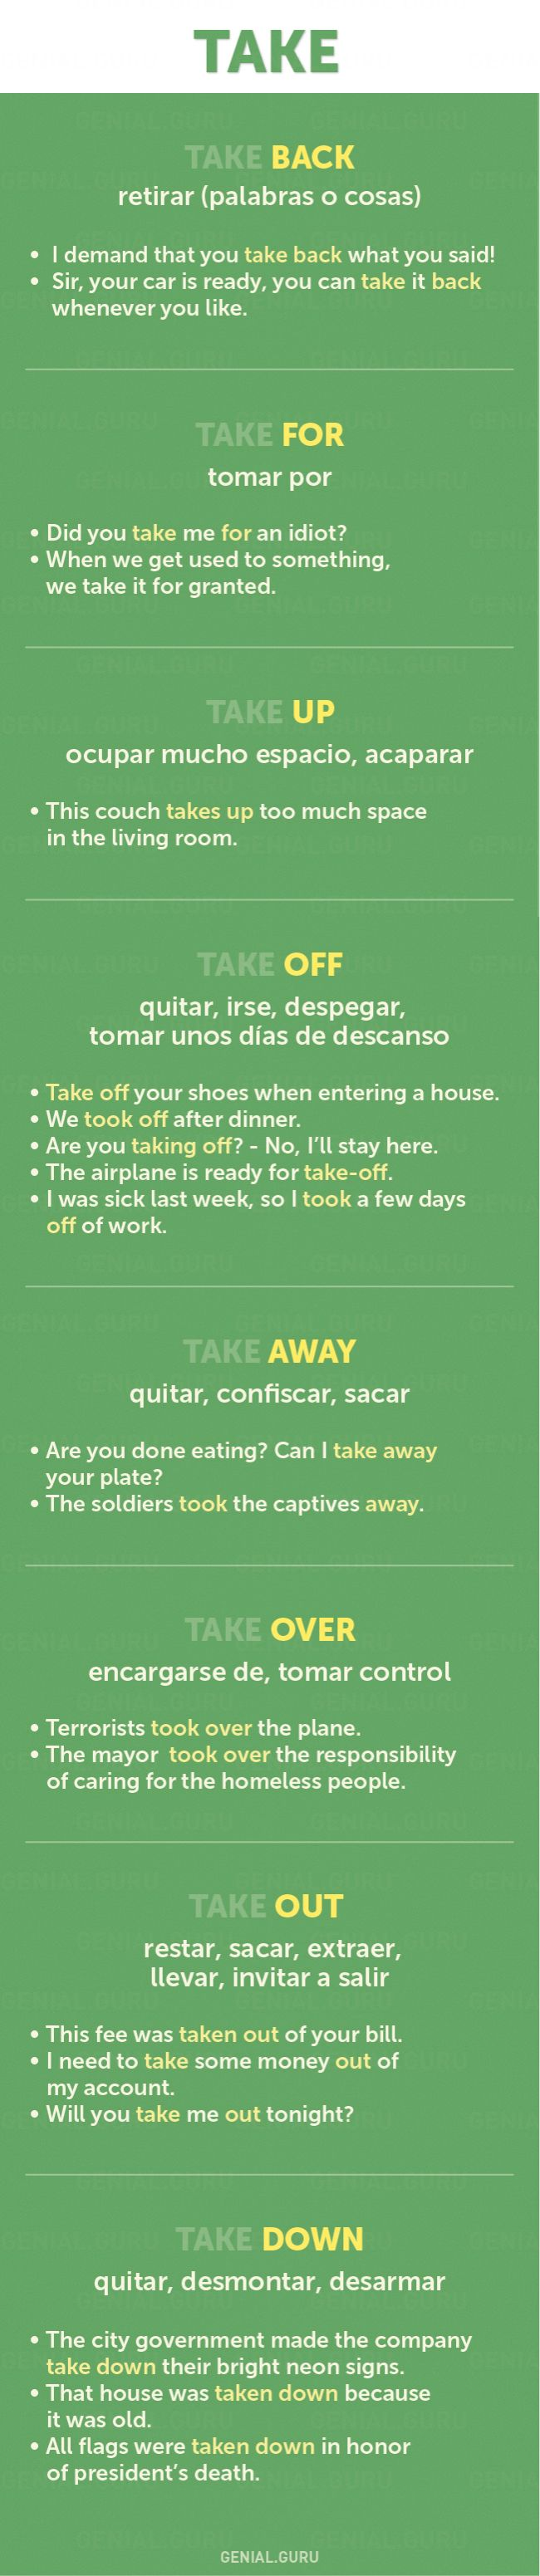 60+ frases con los verbos más necesarios en Inglés Repinned by Chesapeake College Adult Ed. We offer free classes on the Eastern Shore of MD to help you earn your GED - H.S. Diploma or Learn English (ESL). www.Chesapeake.edu